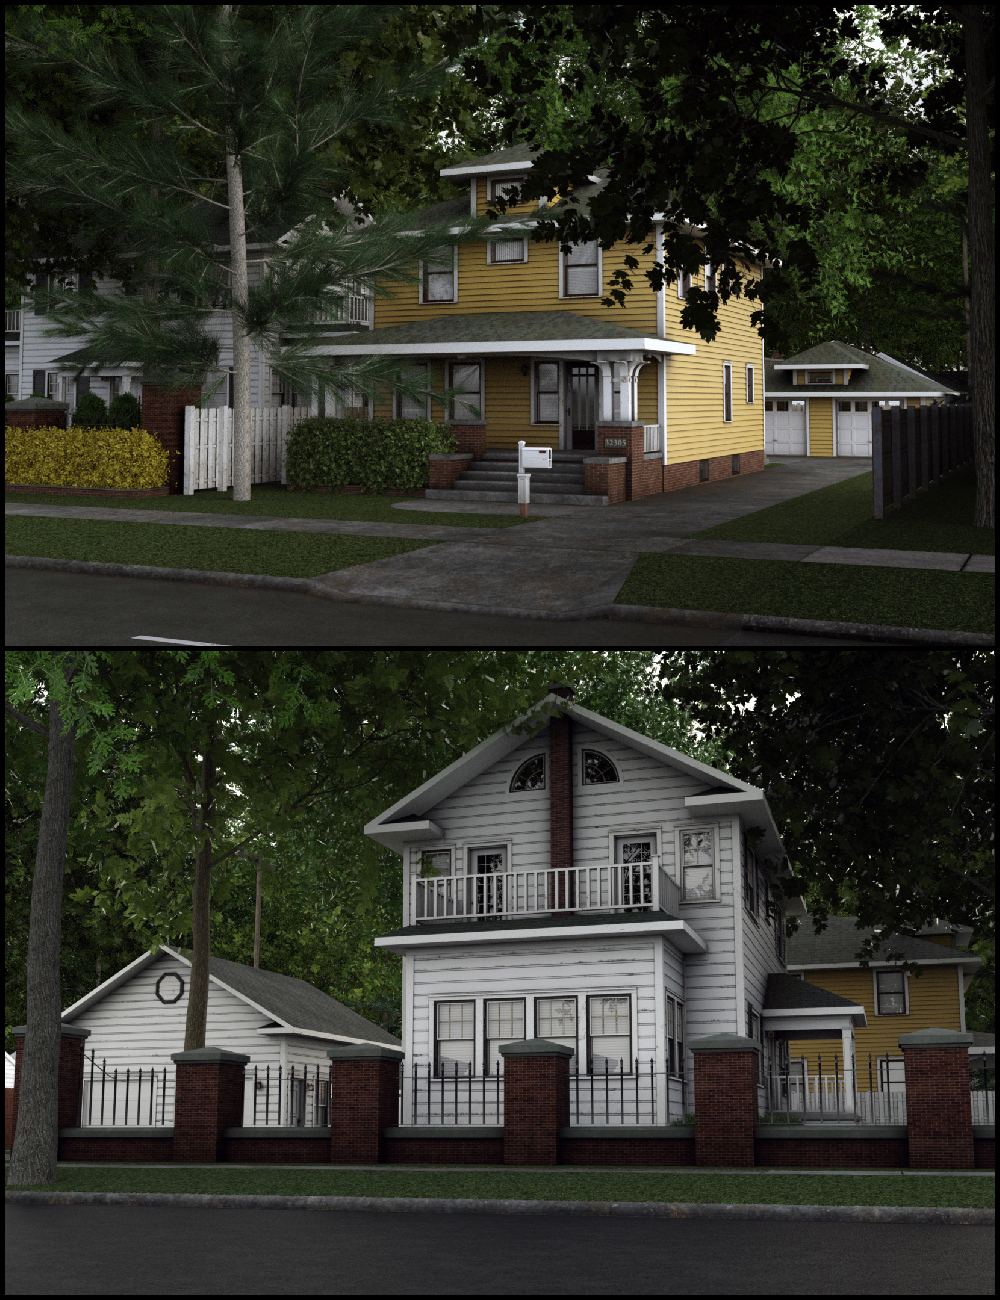 C3D Neighborhood XPack 3 by: Collective3d, 3D Models by Daz 3D